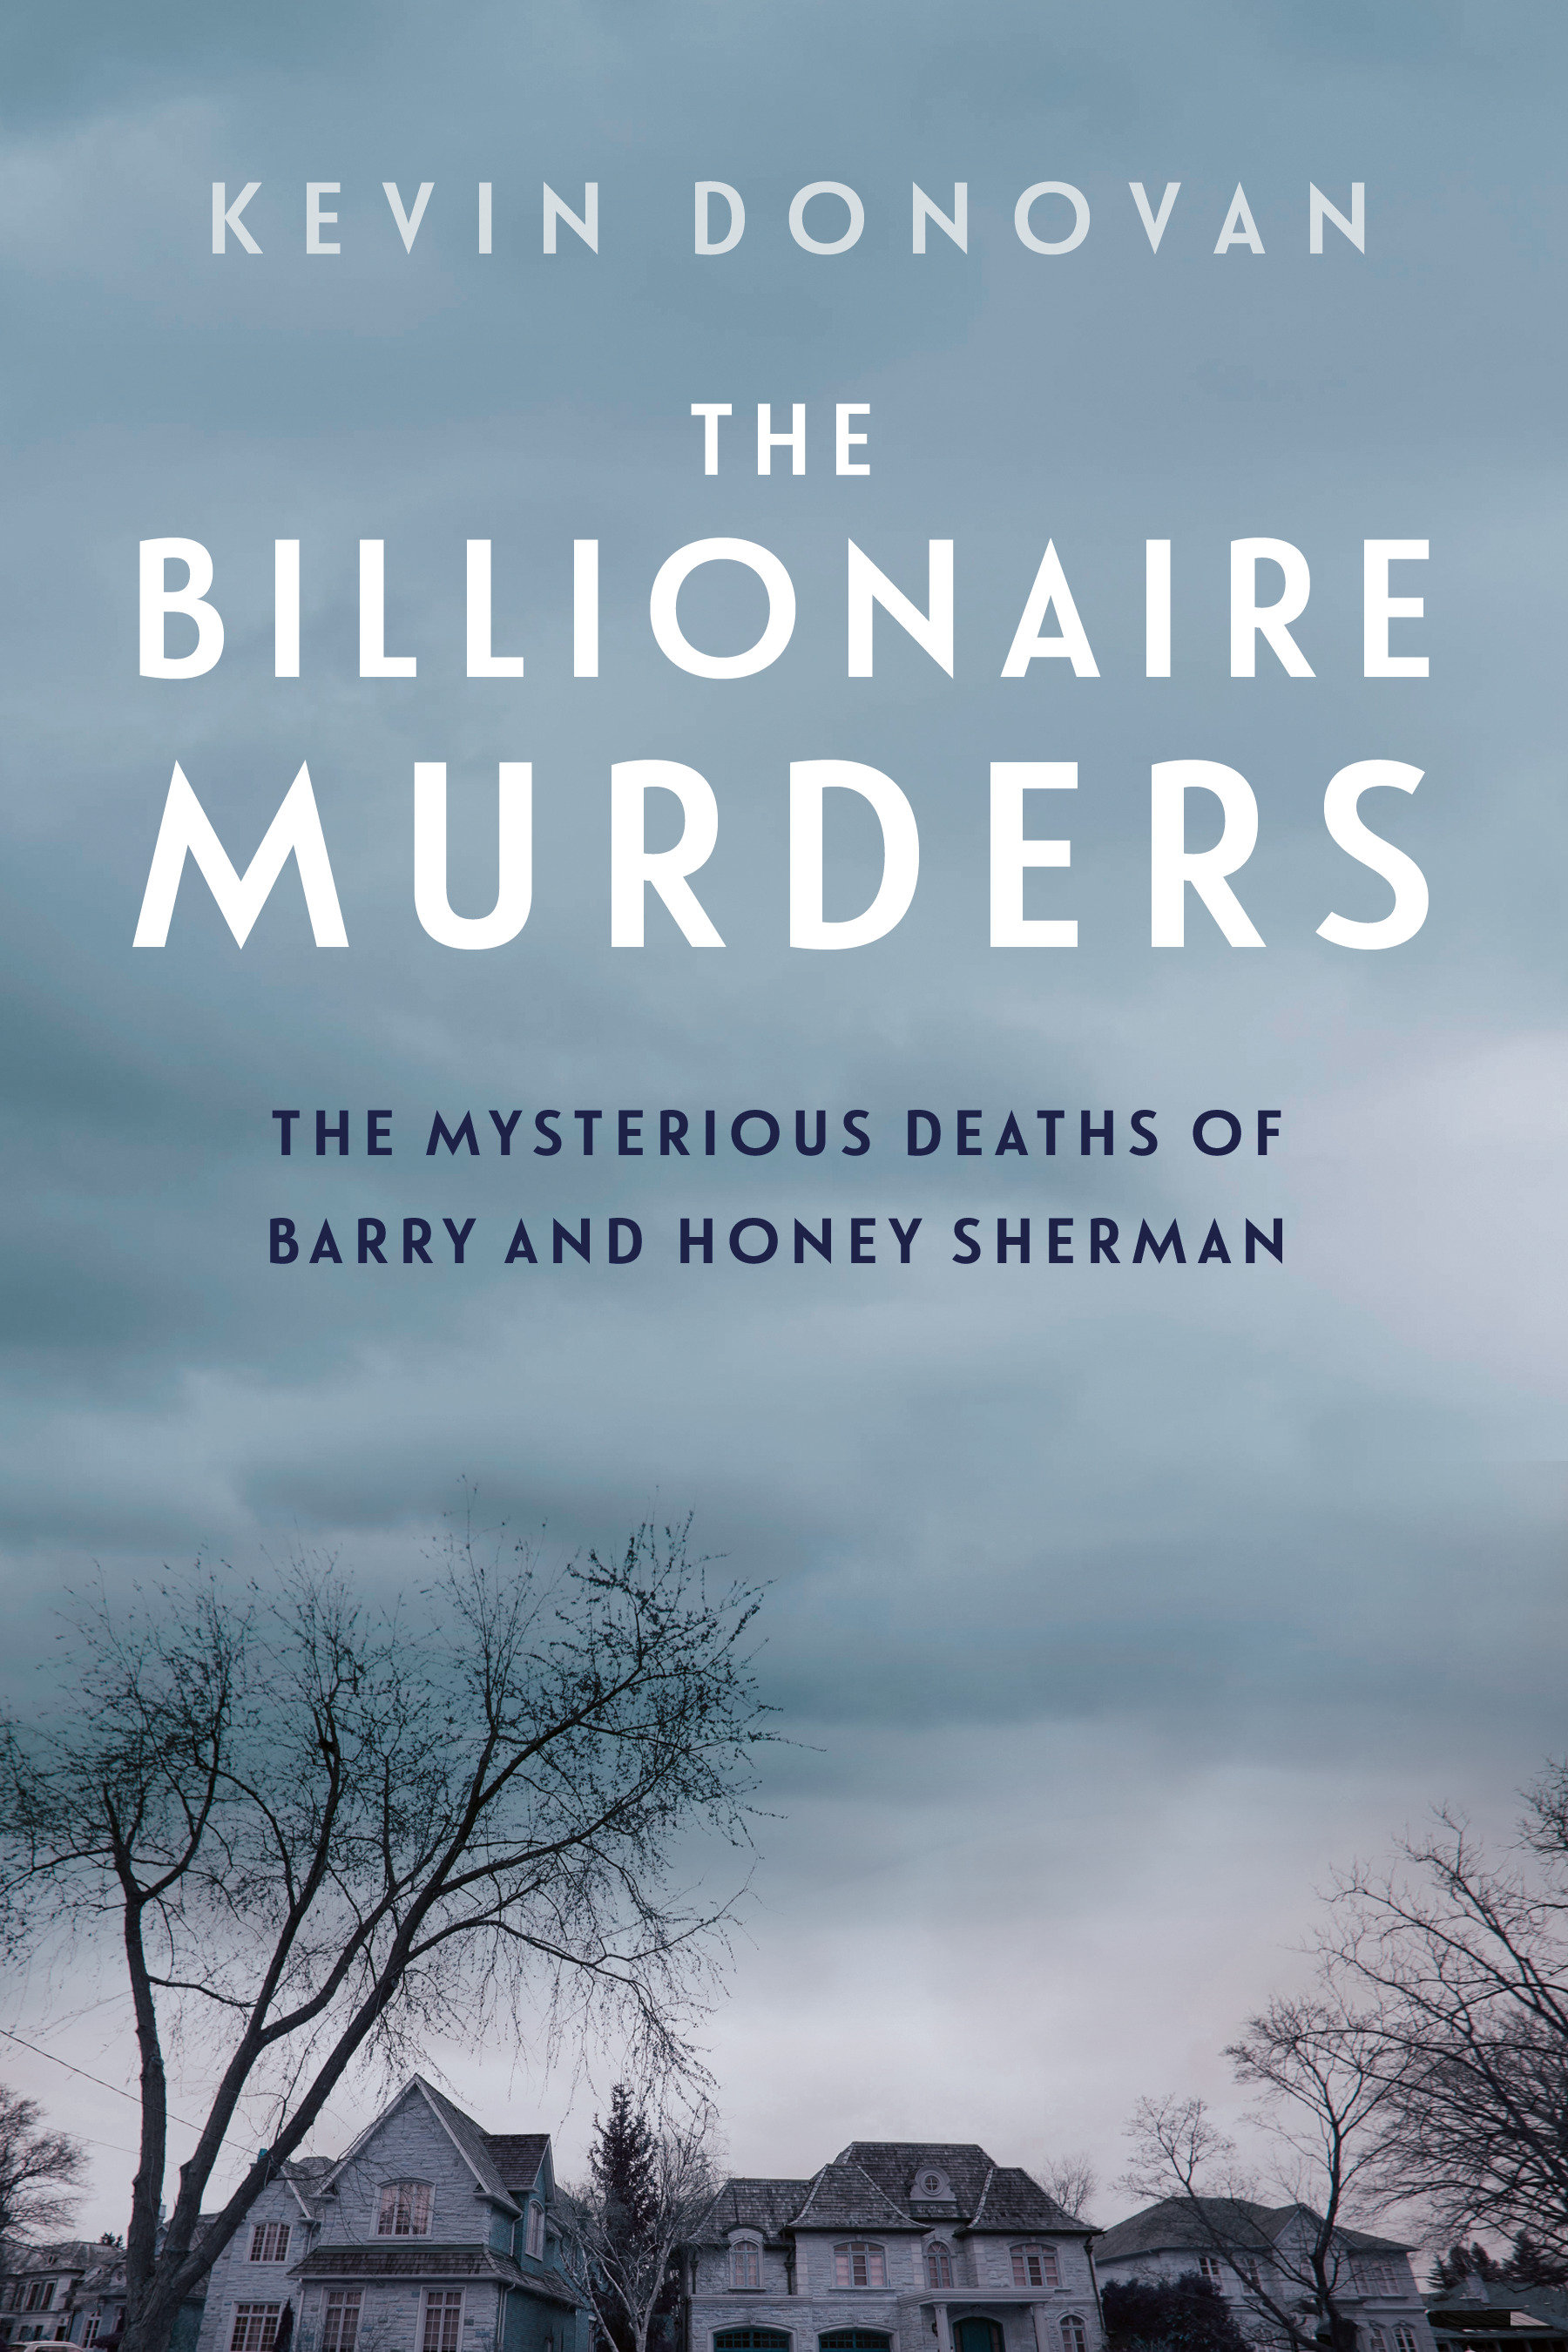 The Billionaire Murders The Mysterious Deaths of Barry and Honey Sherman